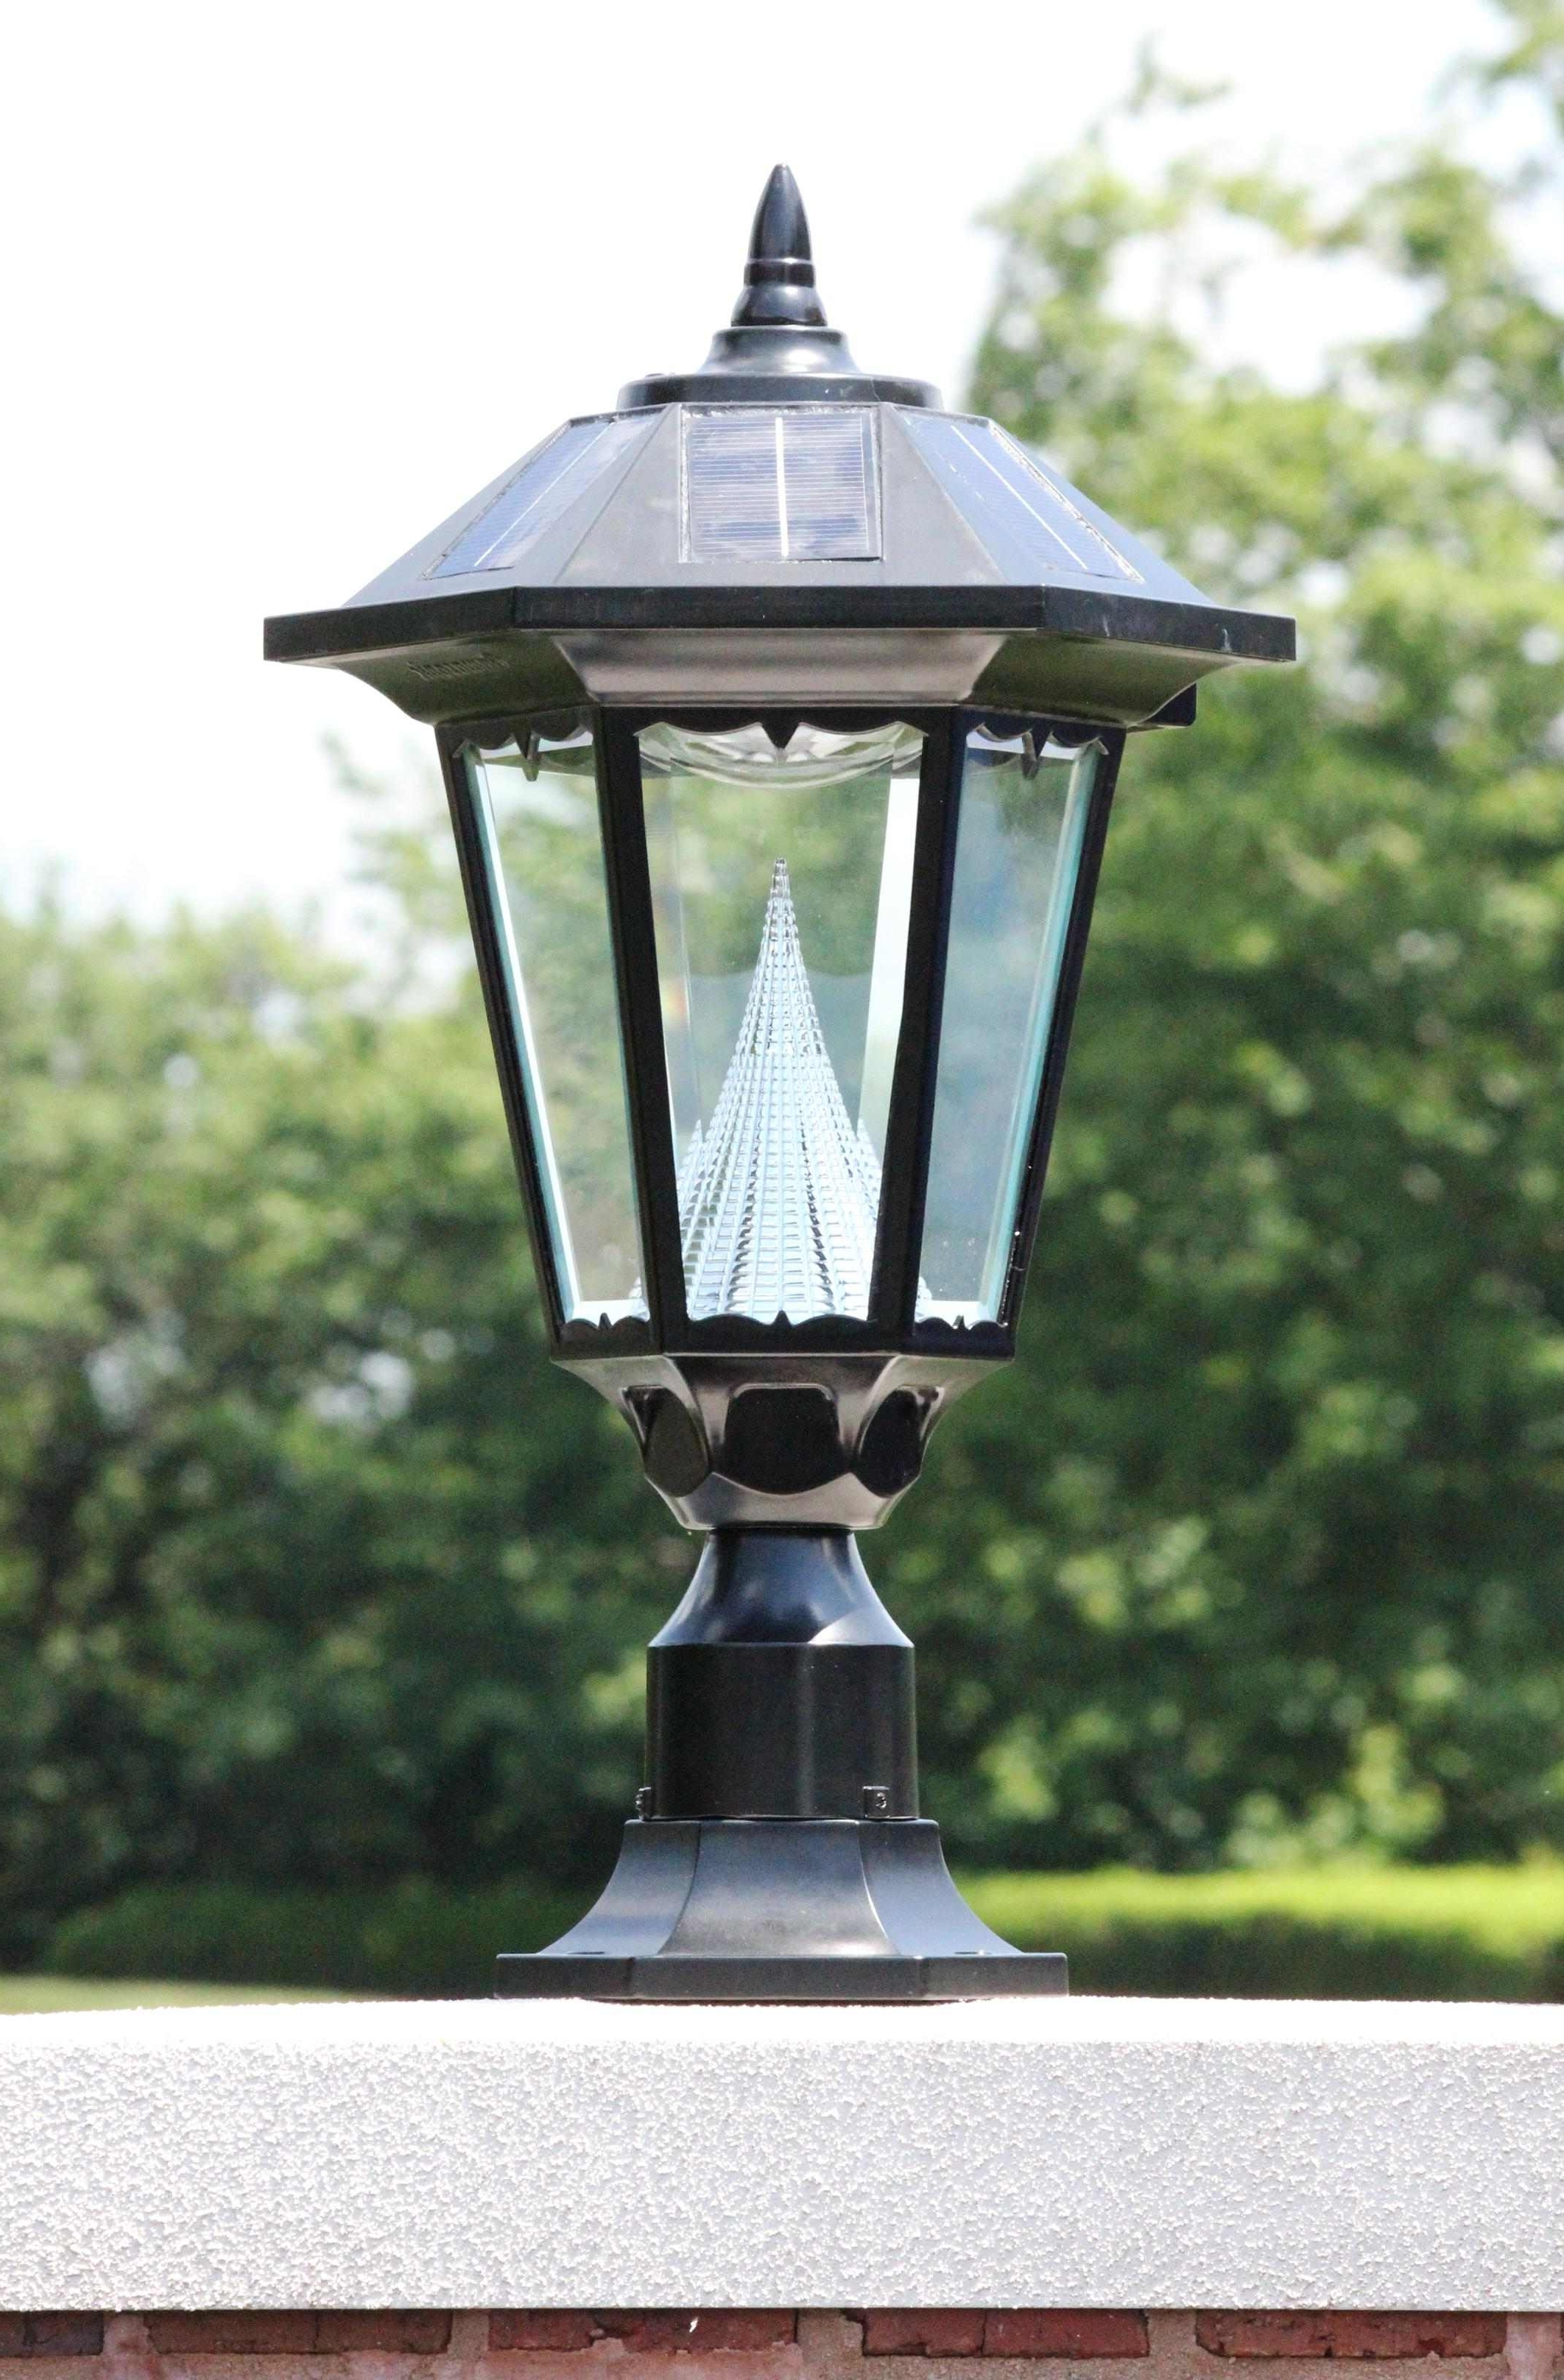 Lamp: Home Lighting Spectacular Outdoor Flood Lights Home Depot Throughout Most Current Solar Driveway Lights At Home Depot (View 7 of 20)